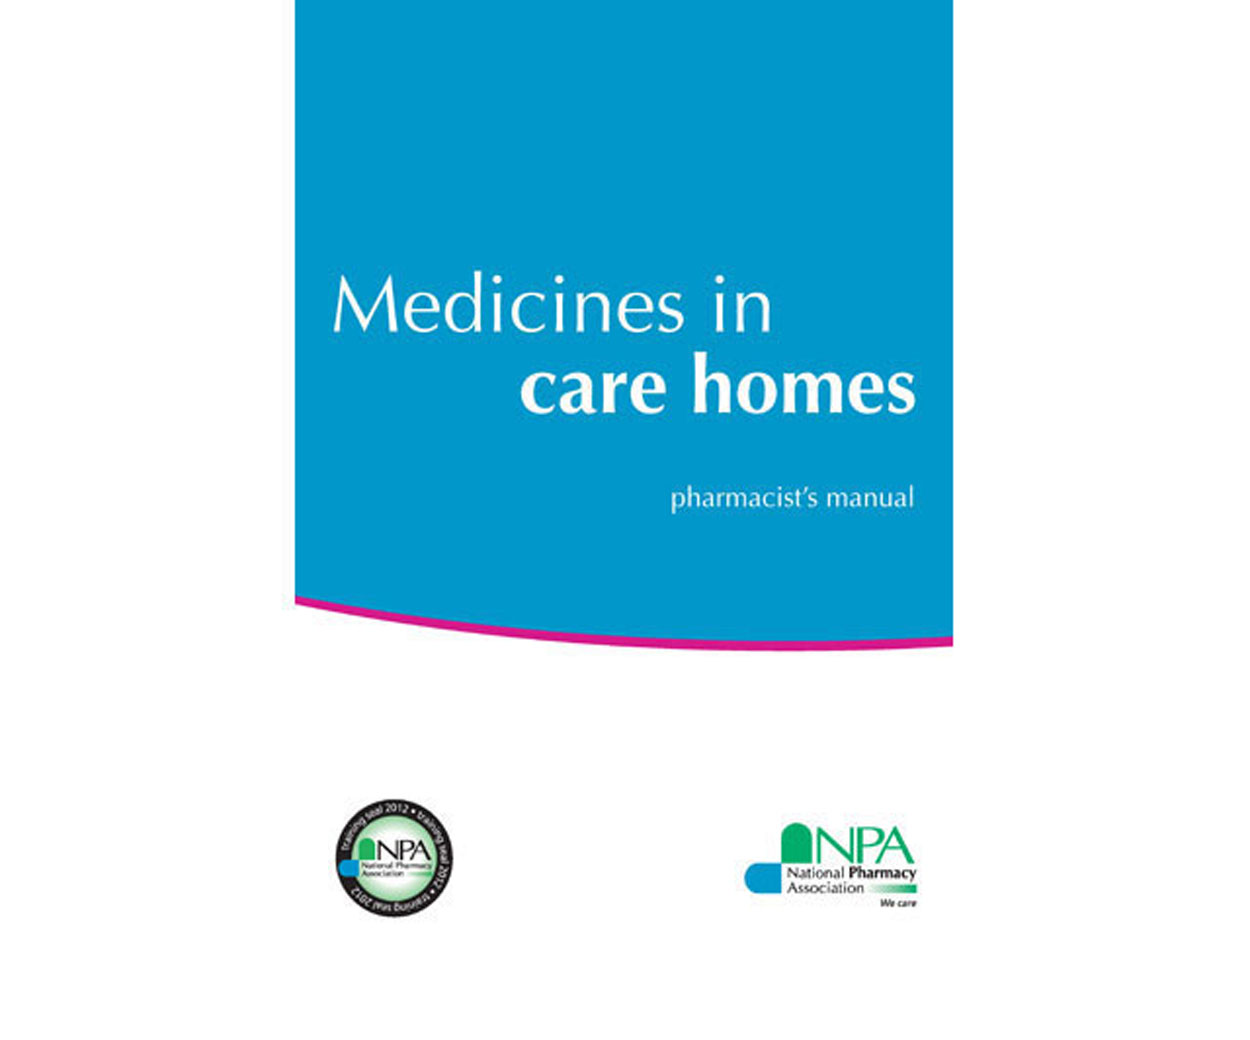 Medicines in Care Homes Training Course - Bundle